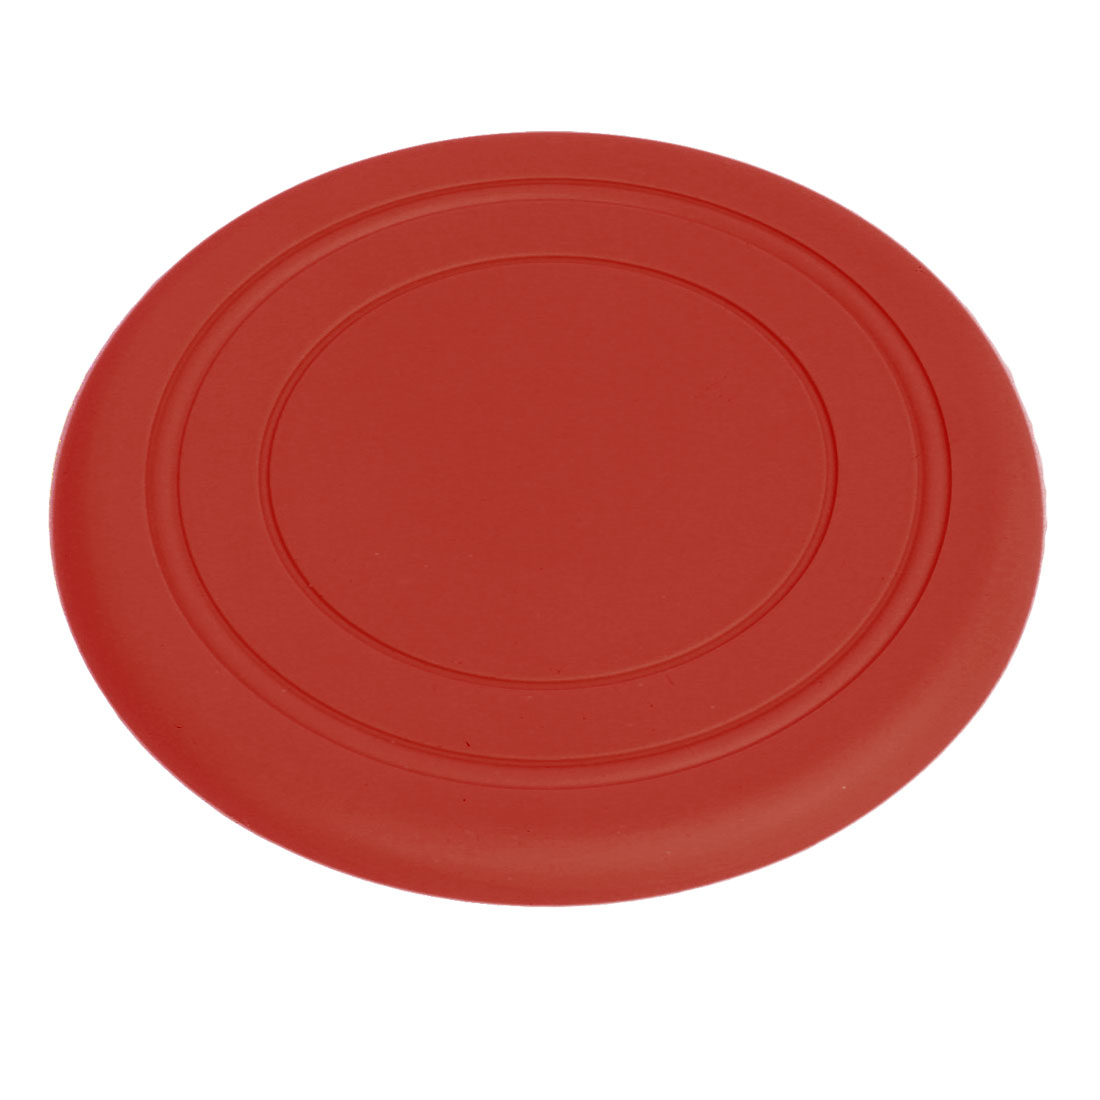 Silicone Flying Disc Frisbee Game Toy Red 6.9 Inch Diameter for Pet Doggie